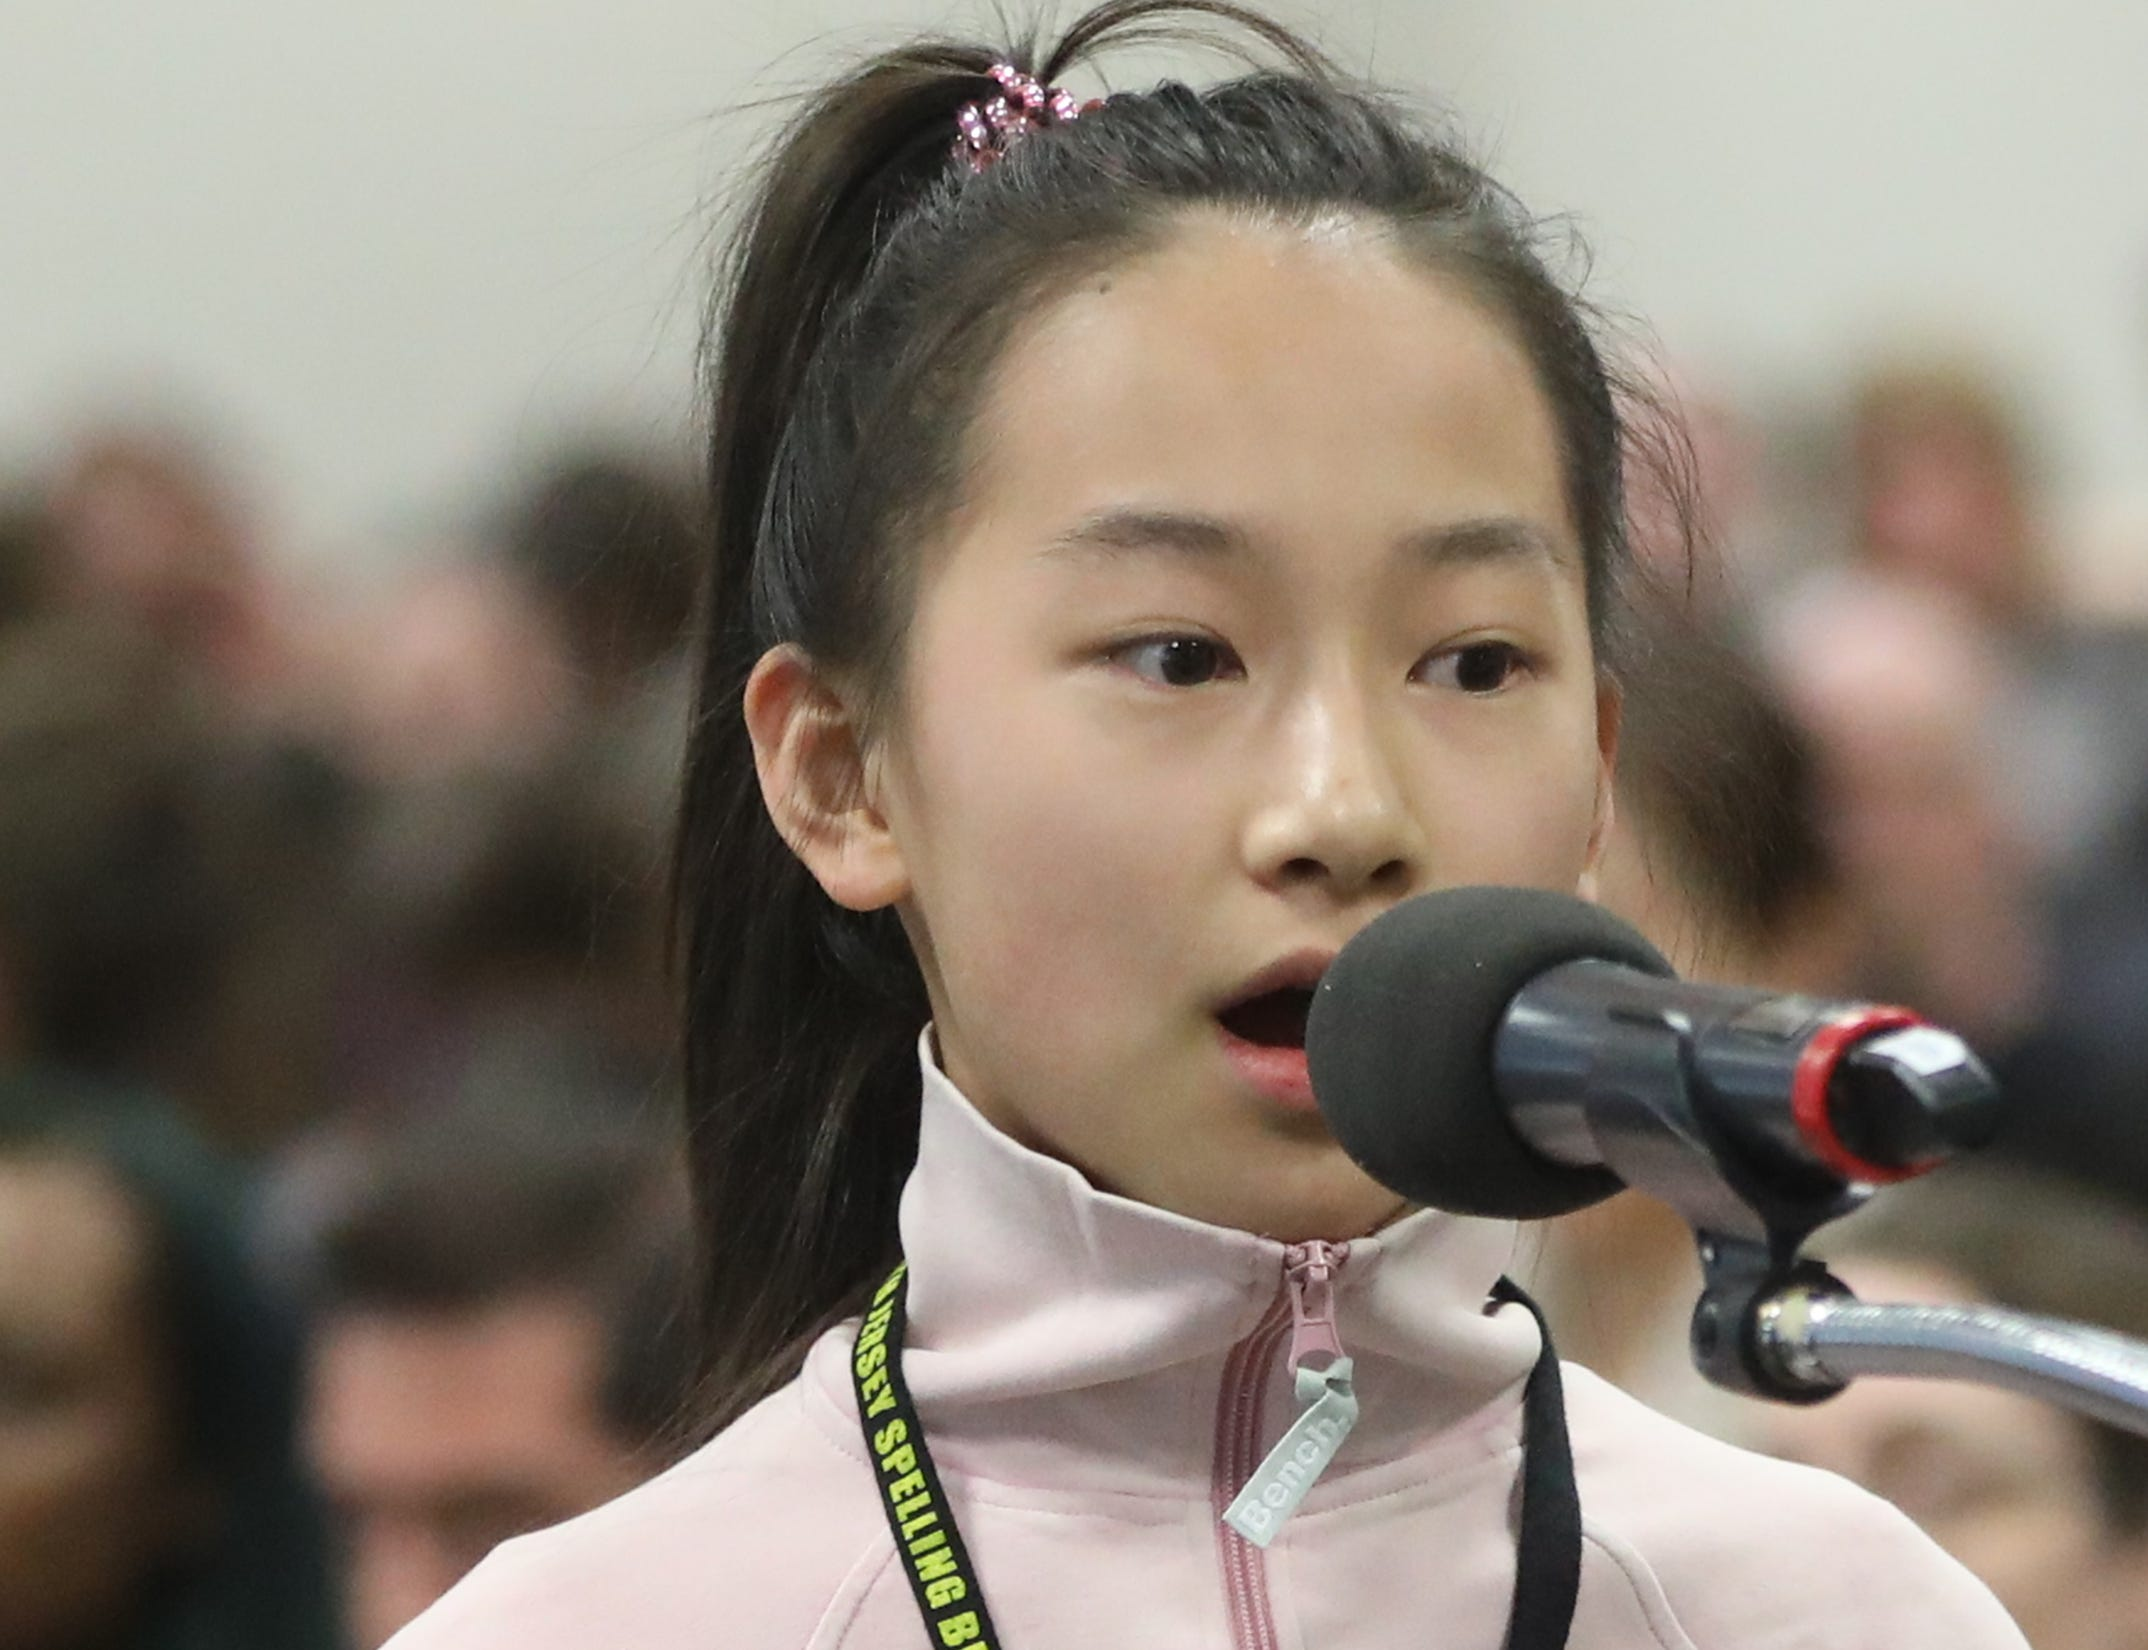 Harmony Zhu, of Englewood, competes in the first round of the 2019 North Jersey Spelling Bee, in Paramus. Thursday, March 14, 2019